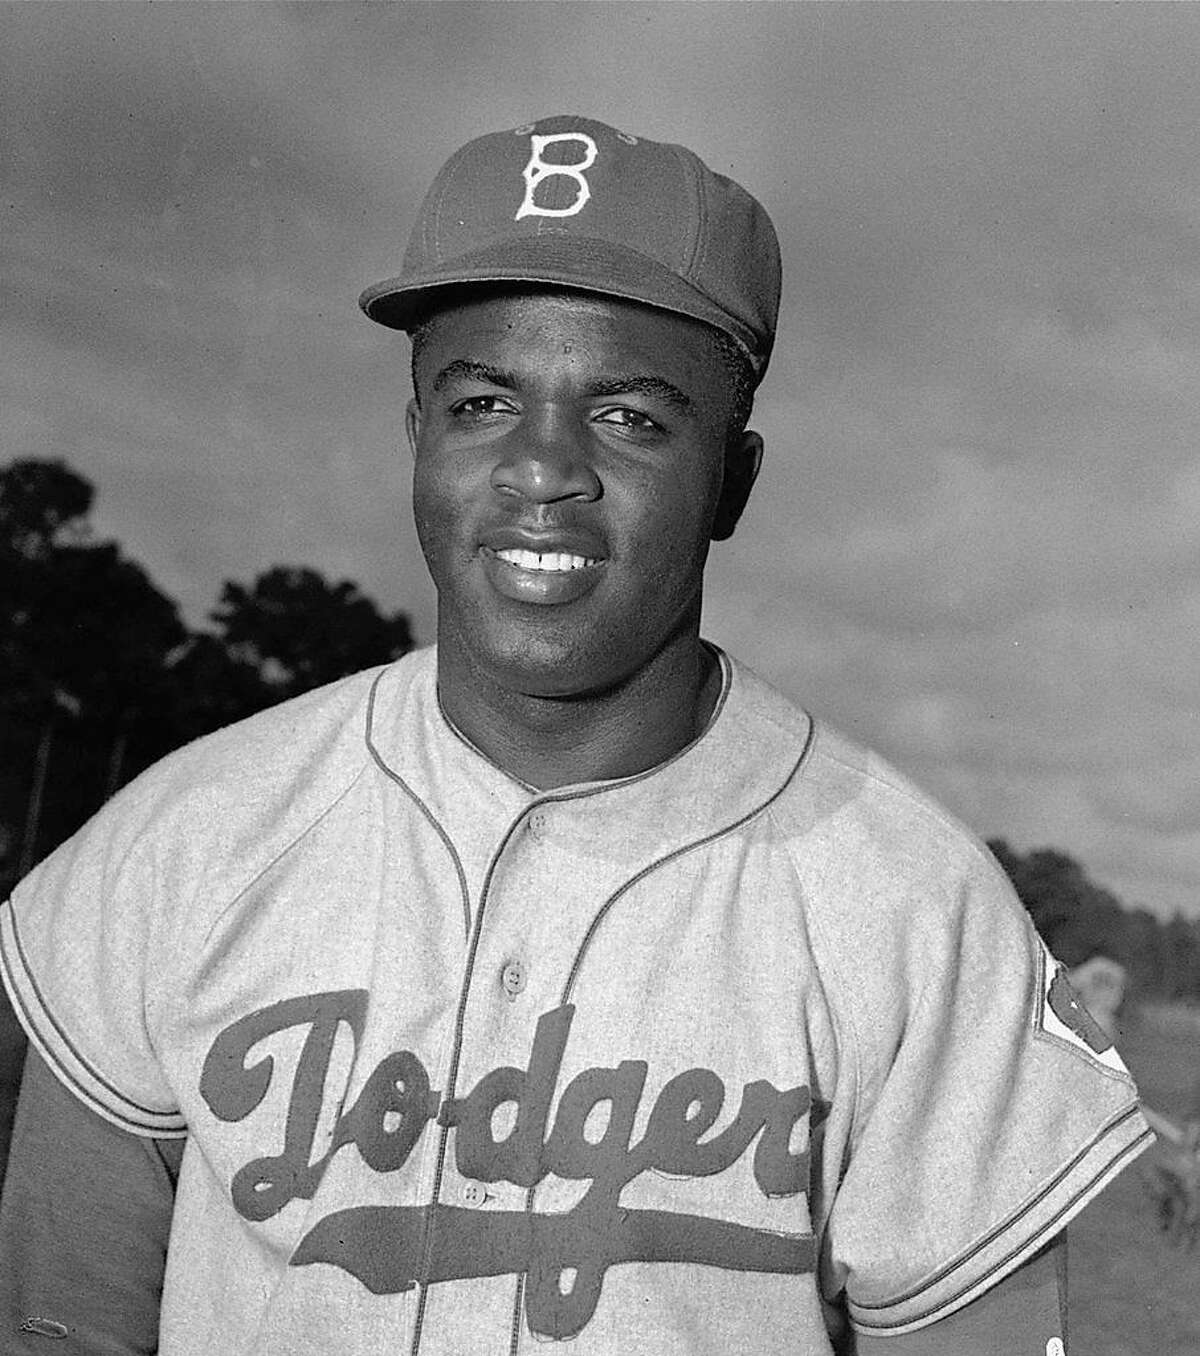 FILE -- Brooklyn Dodgers' infielder Jackie Robinson poses at spring training in Vero Beach, Fla., February 28, 1952. A series of initiatives will be announced in New York Wednesday Feb. 26, 1997, to celebrate the 50th anniversary of Jackie Robinson's entry into the major leagues and the barrier-breaking spirit that guided Robinson throughout he life as an athlete, businessman and social activist. (AP Photo/File)